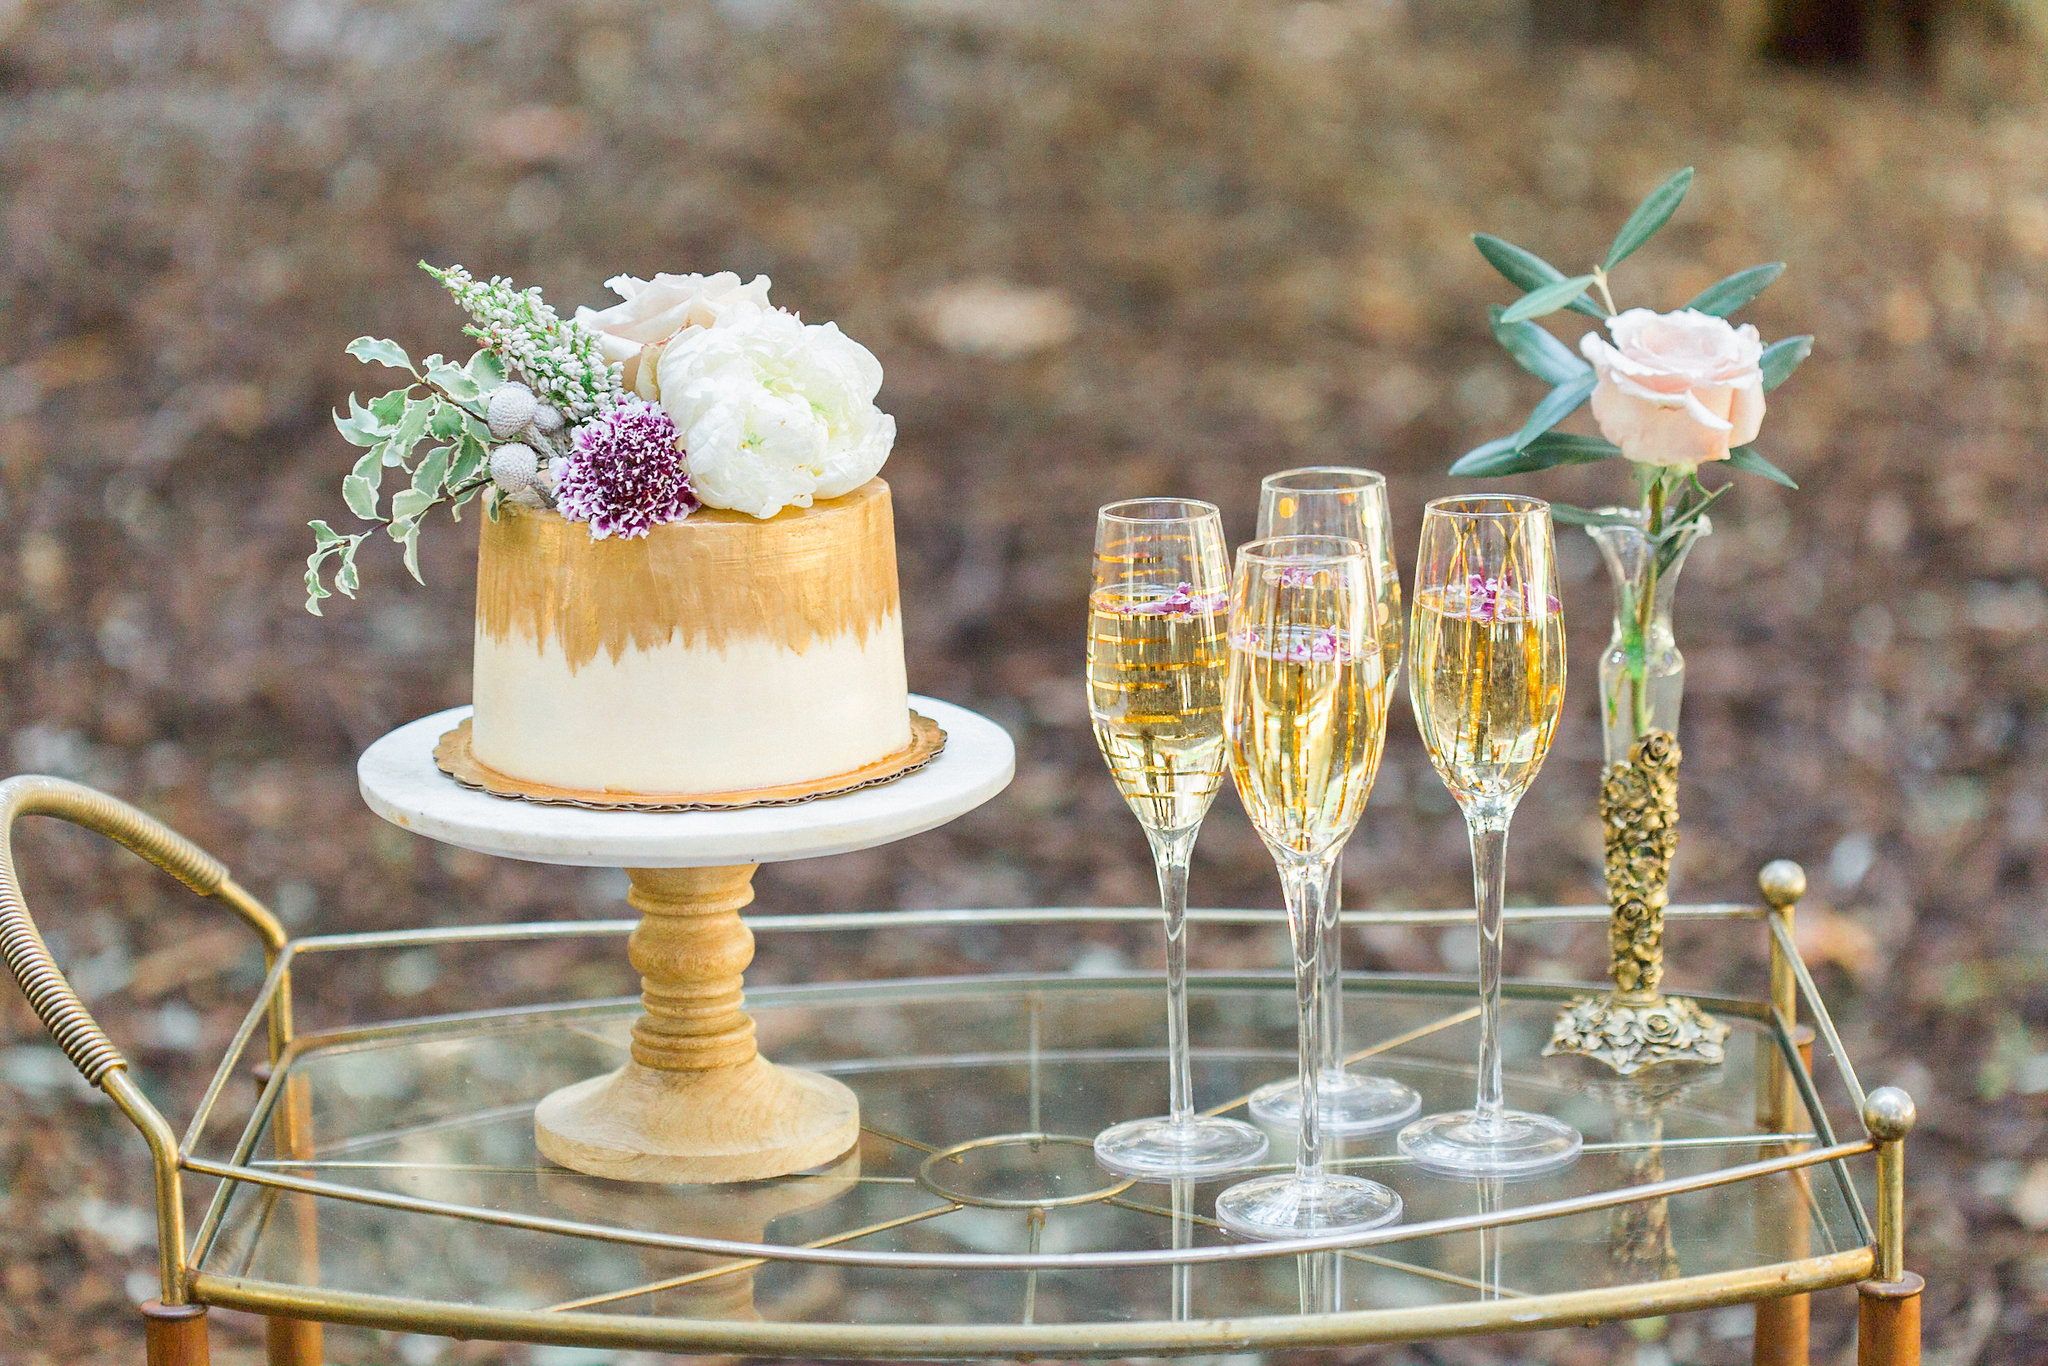 White frosted buttercream cake, painted gold and topped with a floral arrangement. Photo:  Yasmin Roohi